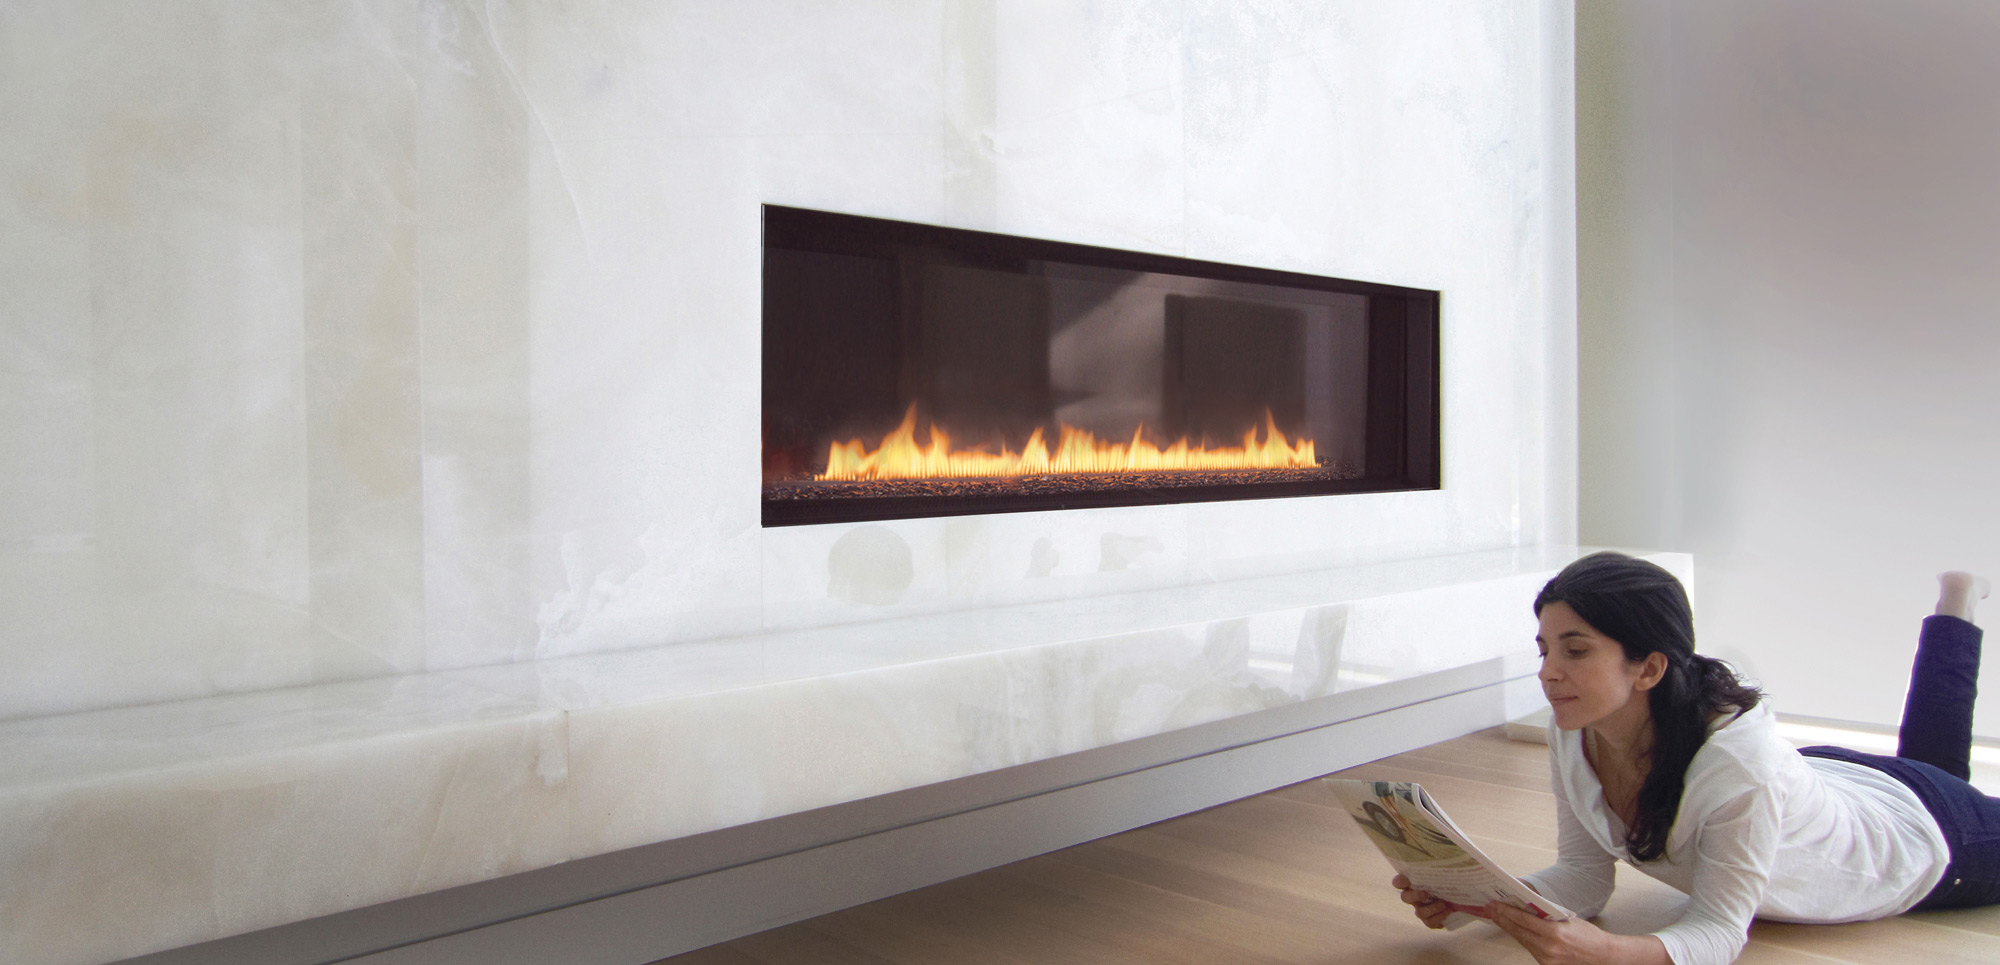 Amusing Design Of The White Wall Ideas With Brown Wooden Floor Added With Modern Gas Fireplace